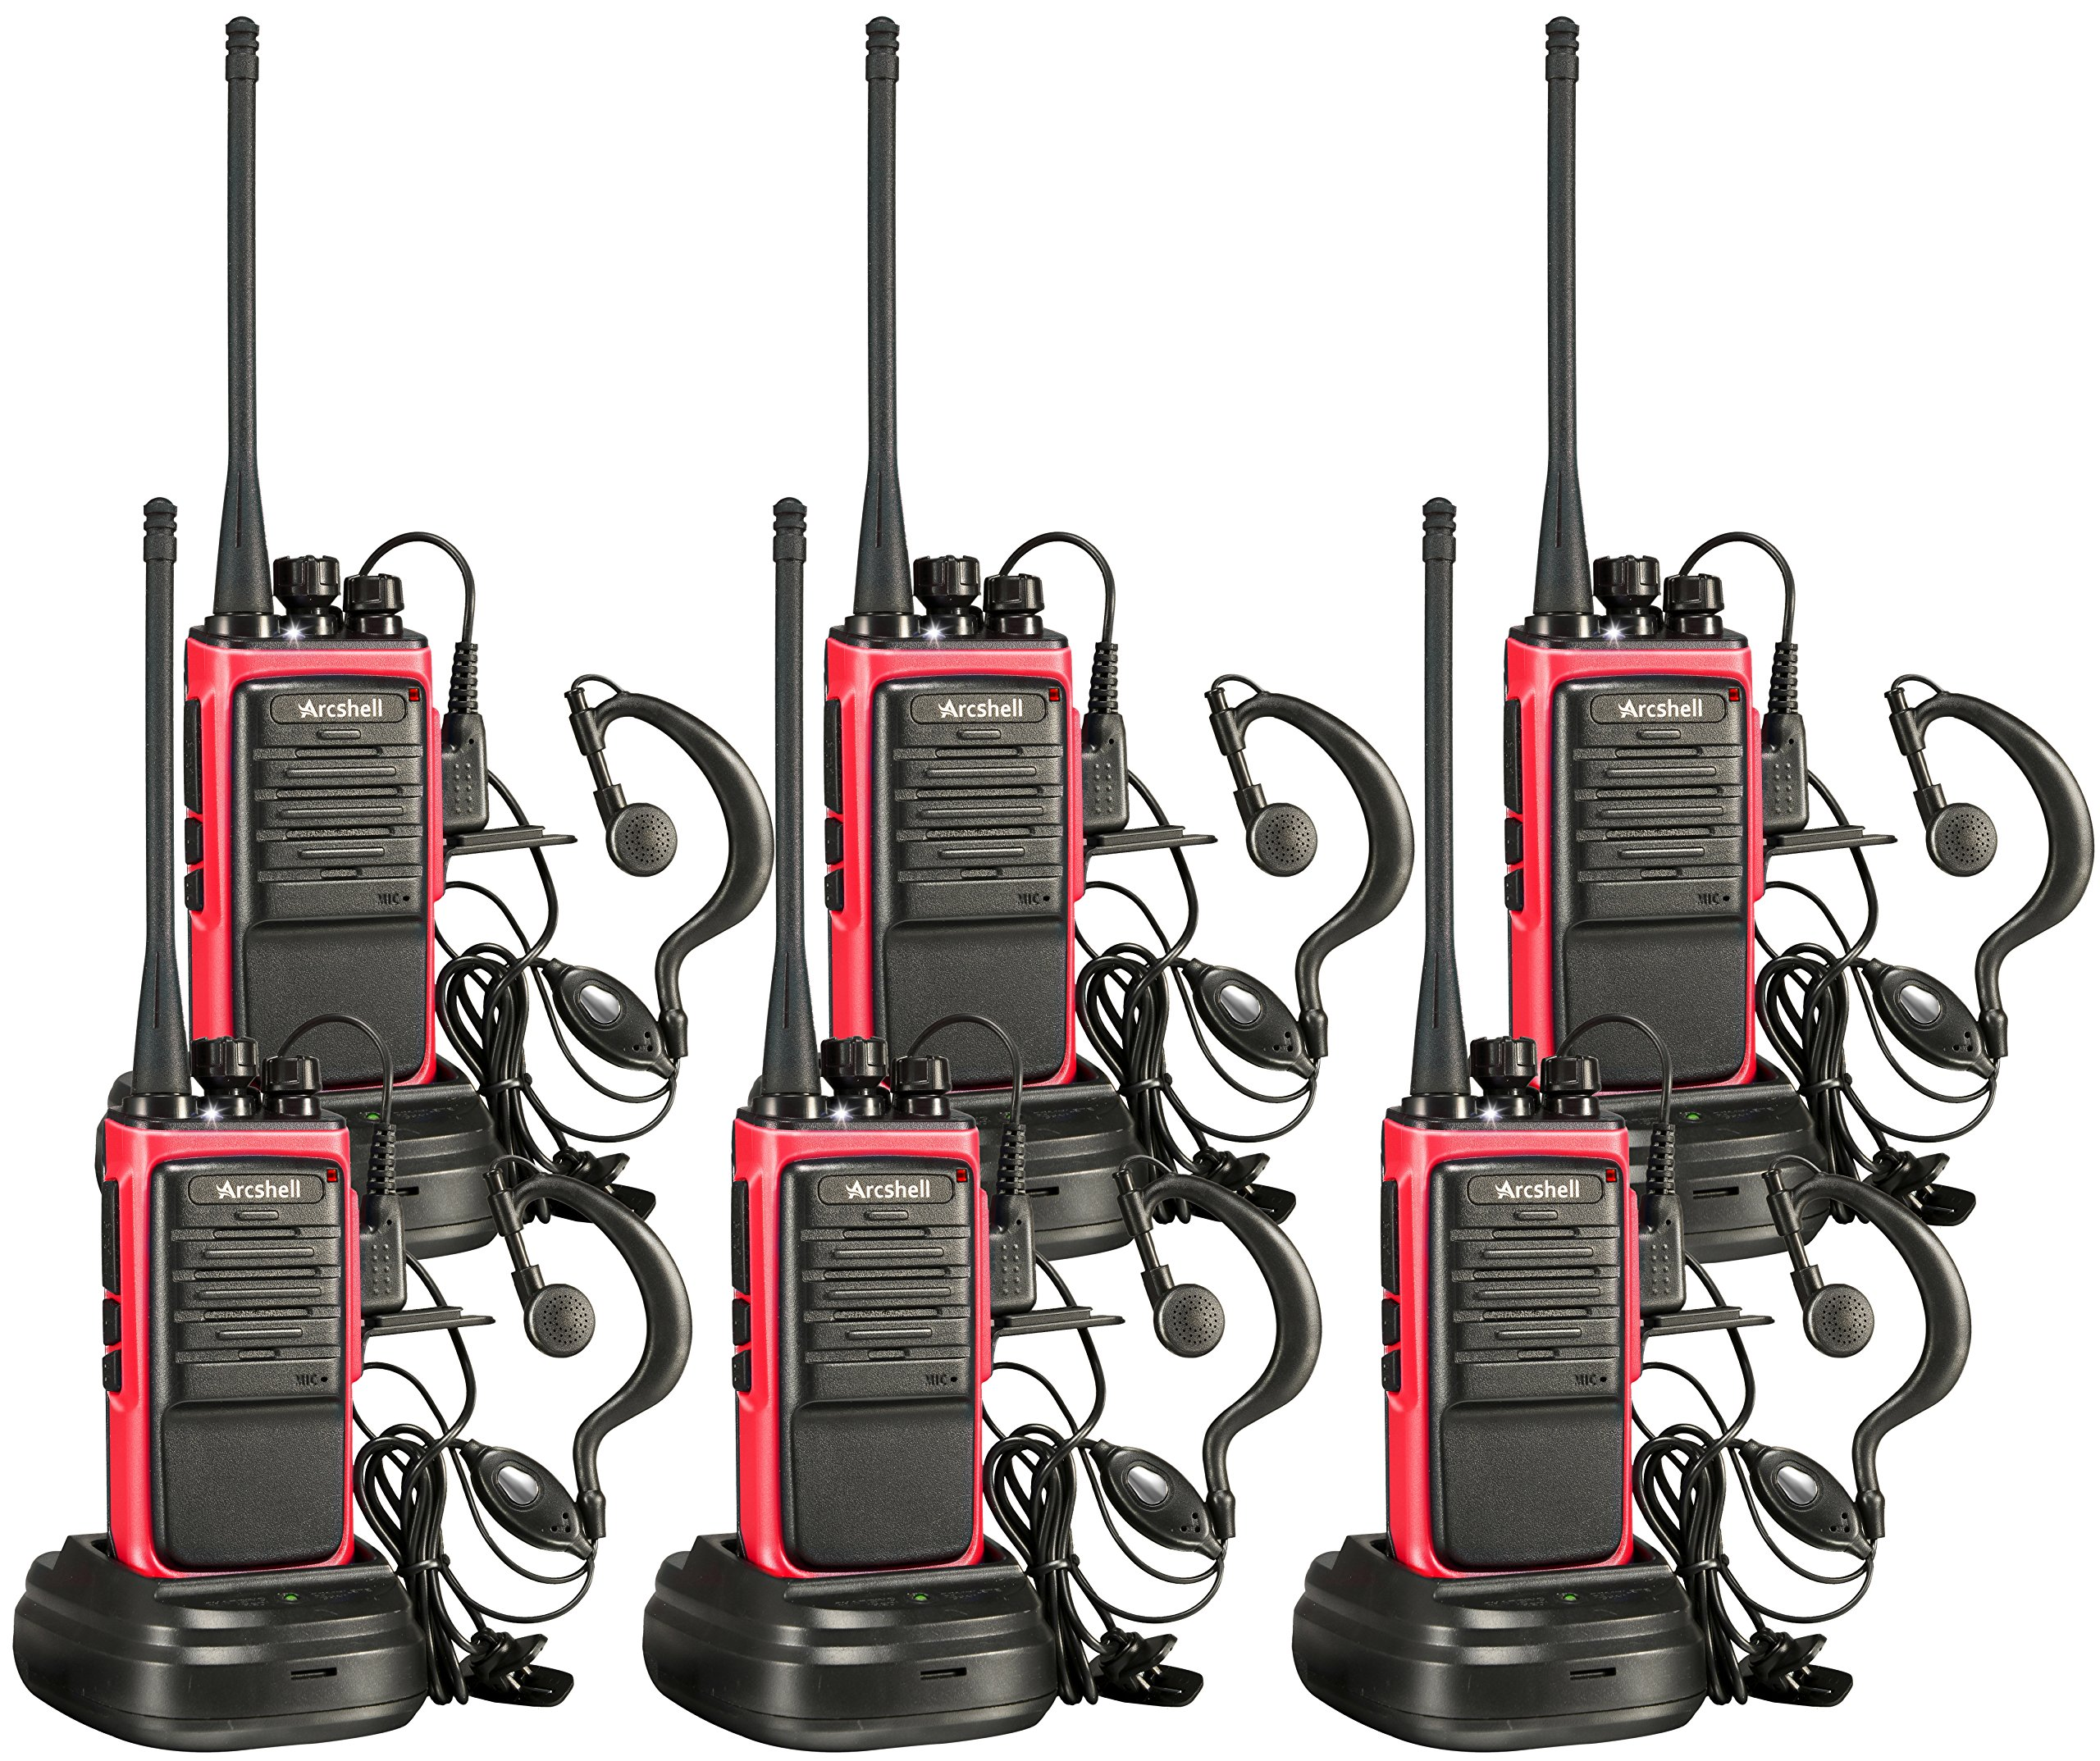 Arcshell Rechargeable Long Range Two-Way Radios with Earpiece 6 Pack Walkie Talkies UHF 400-470Mhz Li-ion Battery and Charger Included by Arcshell